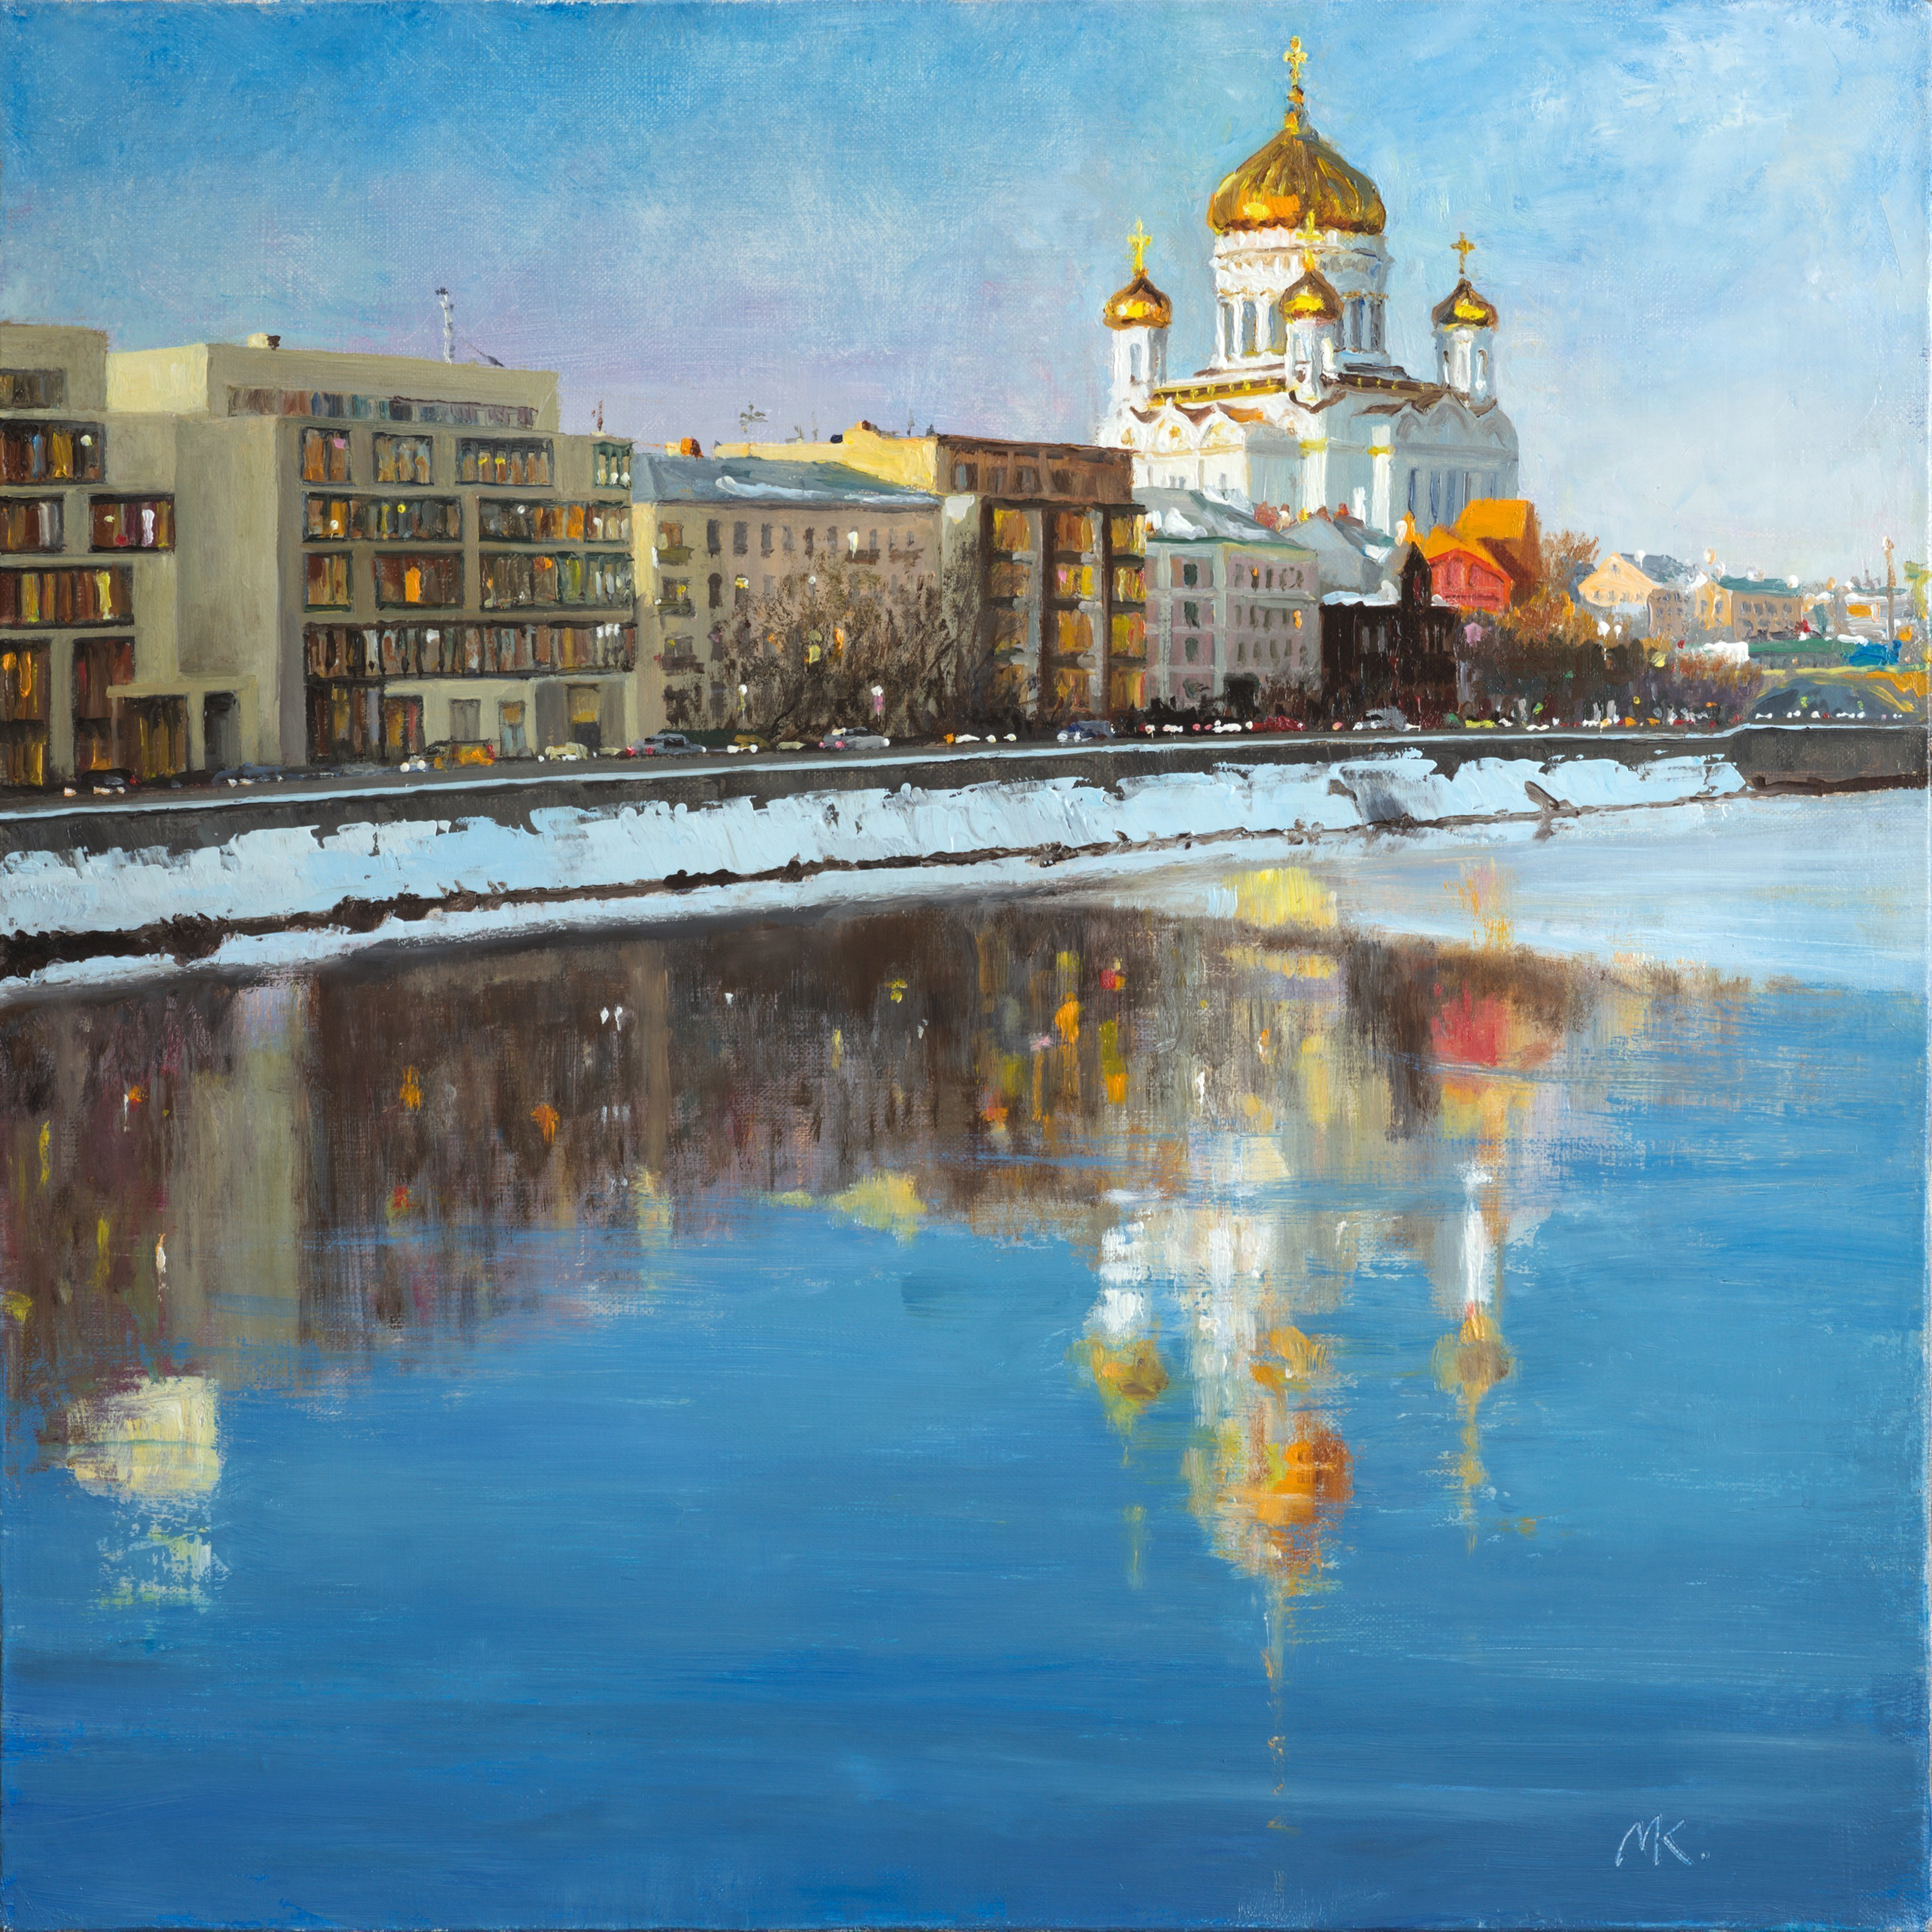 Mikhail Velavok; The Embankment, 2016, Original Painting Oil, 20 x 20 inches. Artwork description: 241  evening, embankment, city, cityscape, cathedral, street, sunset, water, river, winter, reflection, building...